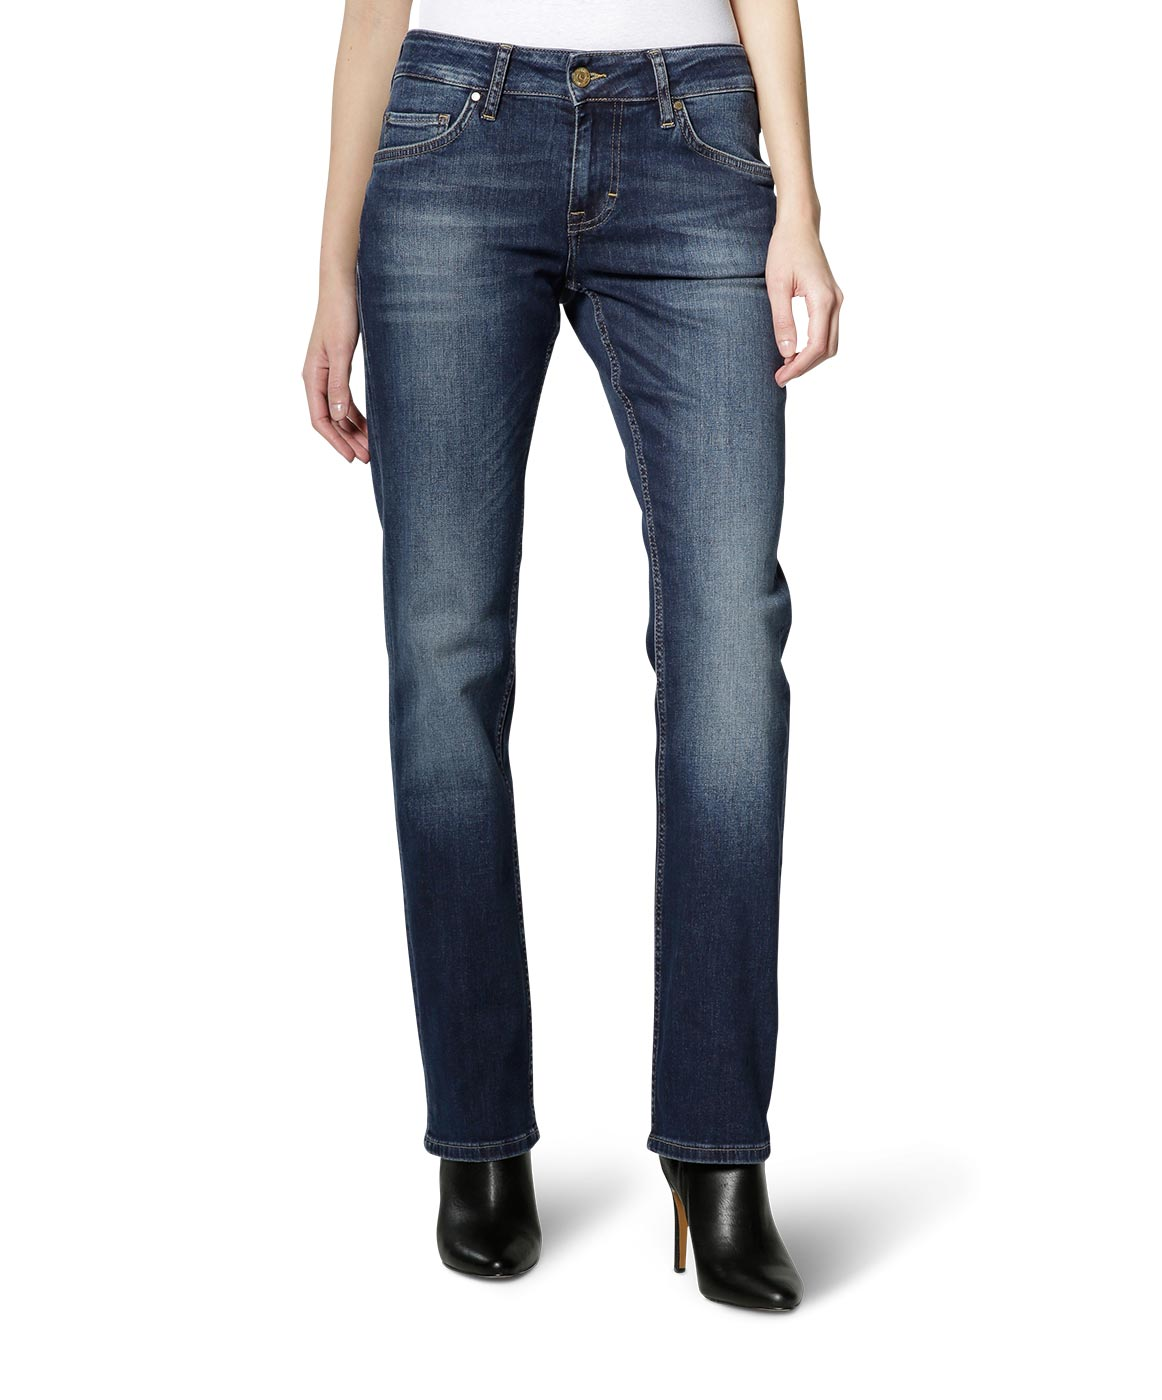 Hosen - Mustang Straight Leg Jeans Sissy Straight in Dark Scratched Used  - Onlineshop Jeans Meile